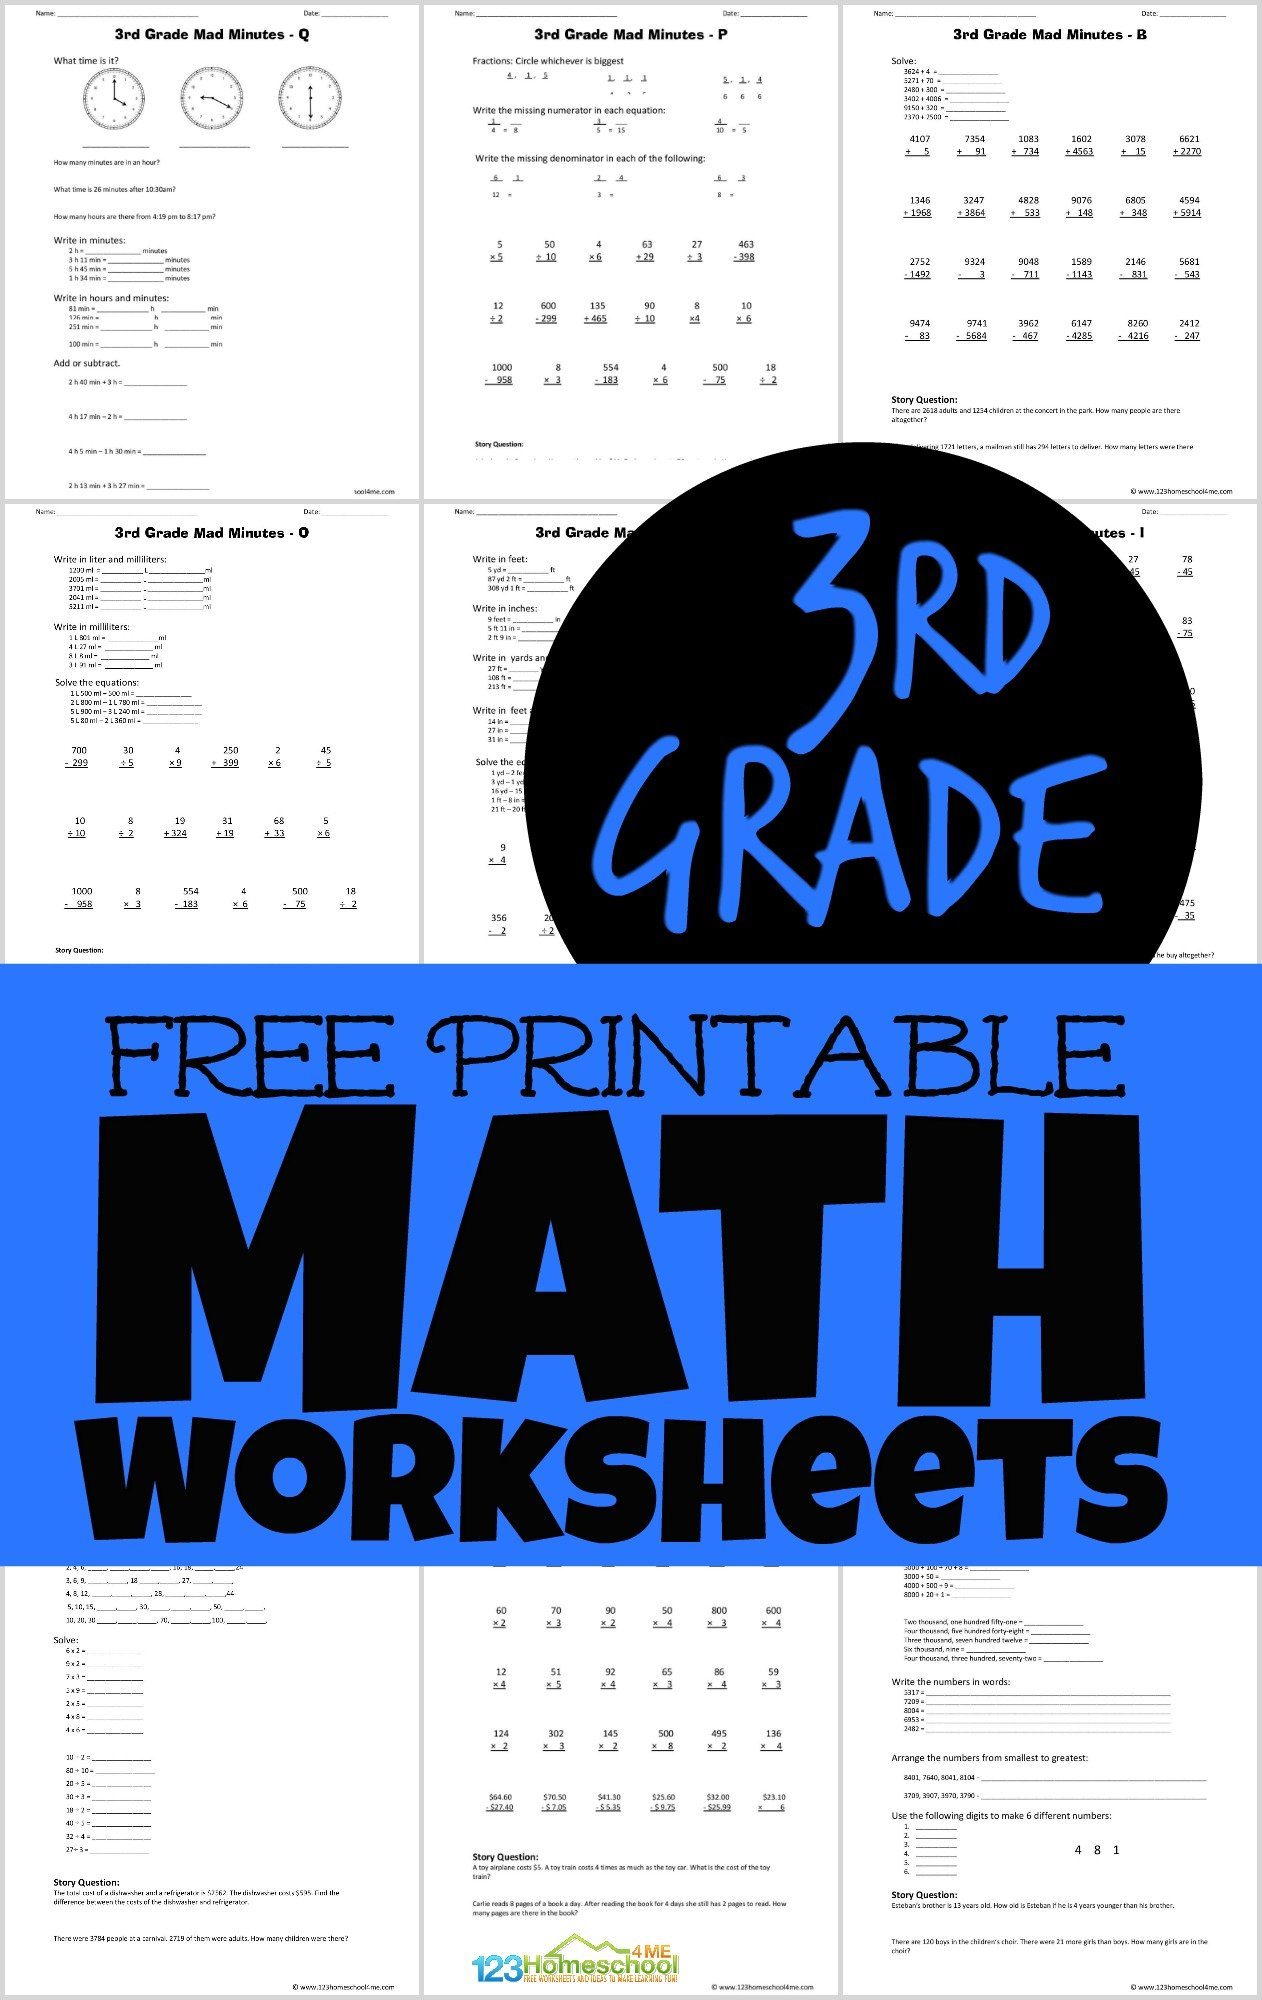 Free Printable 3rd Grade Math Worksheets